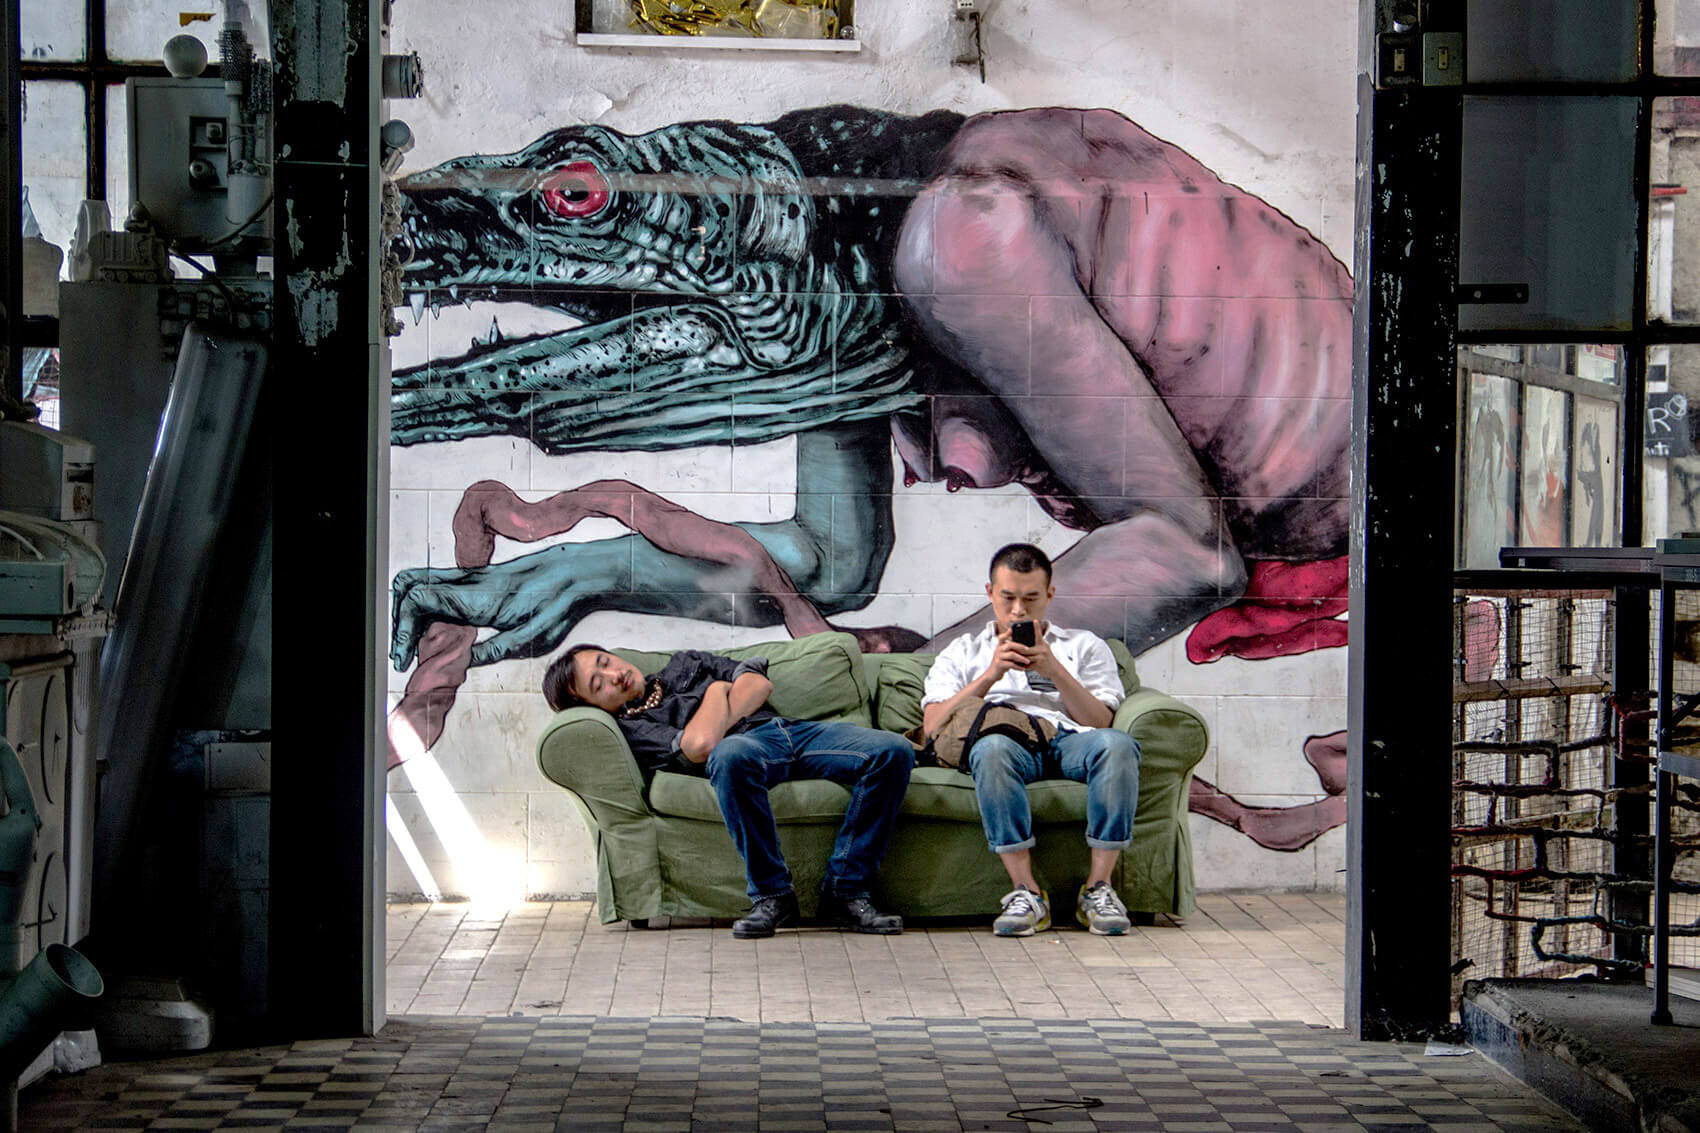 Two relaxed guys with graffiti monster creeping in the back.